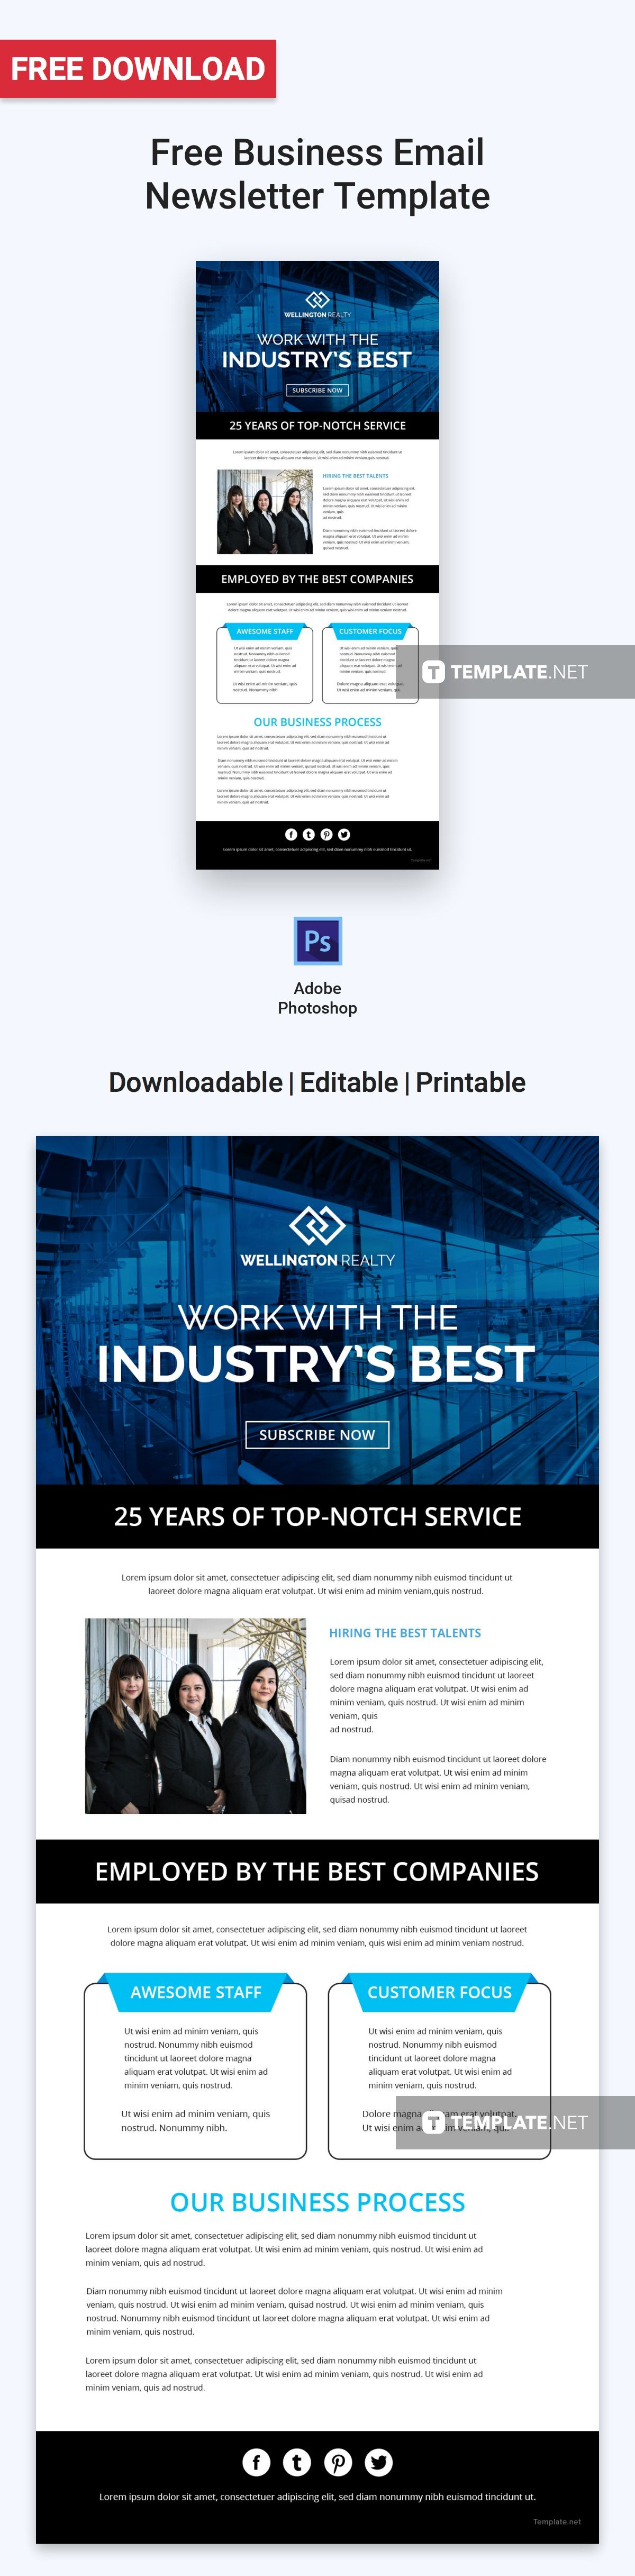 Free Business Email Newsletter Email Newsletters Templates